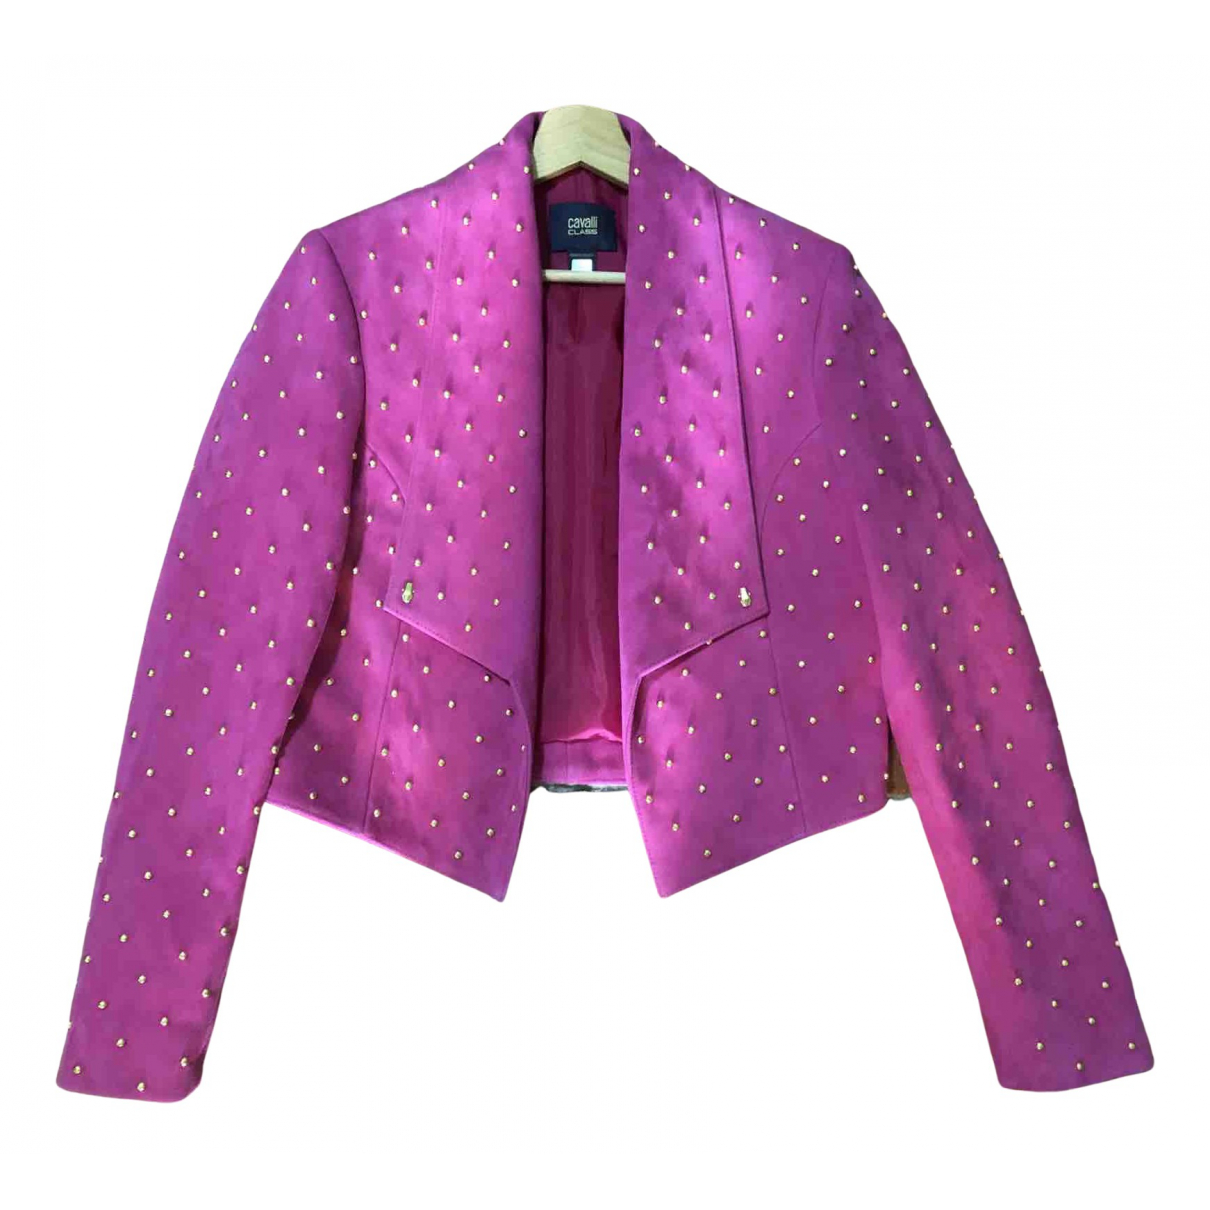 Roberto Cavalli N Pink Leather Leather jacket for Women 40 IT